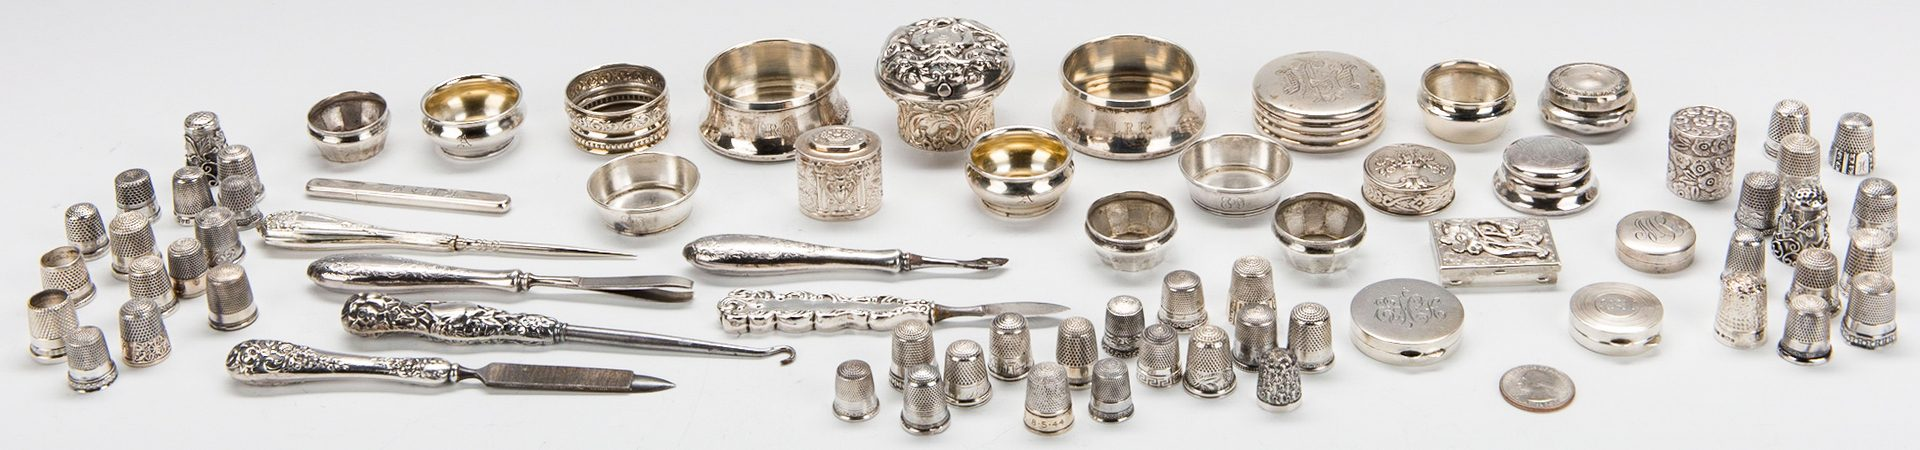 Lot 218: 72 pcs Silver Vertu inc. Thimble Collection